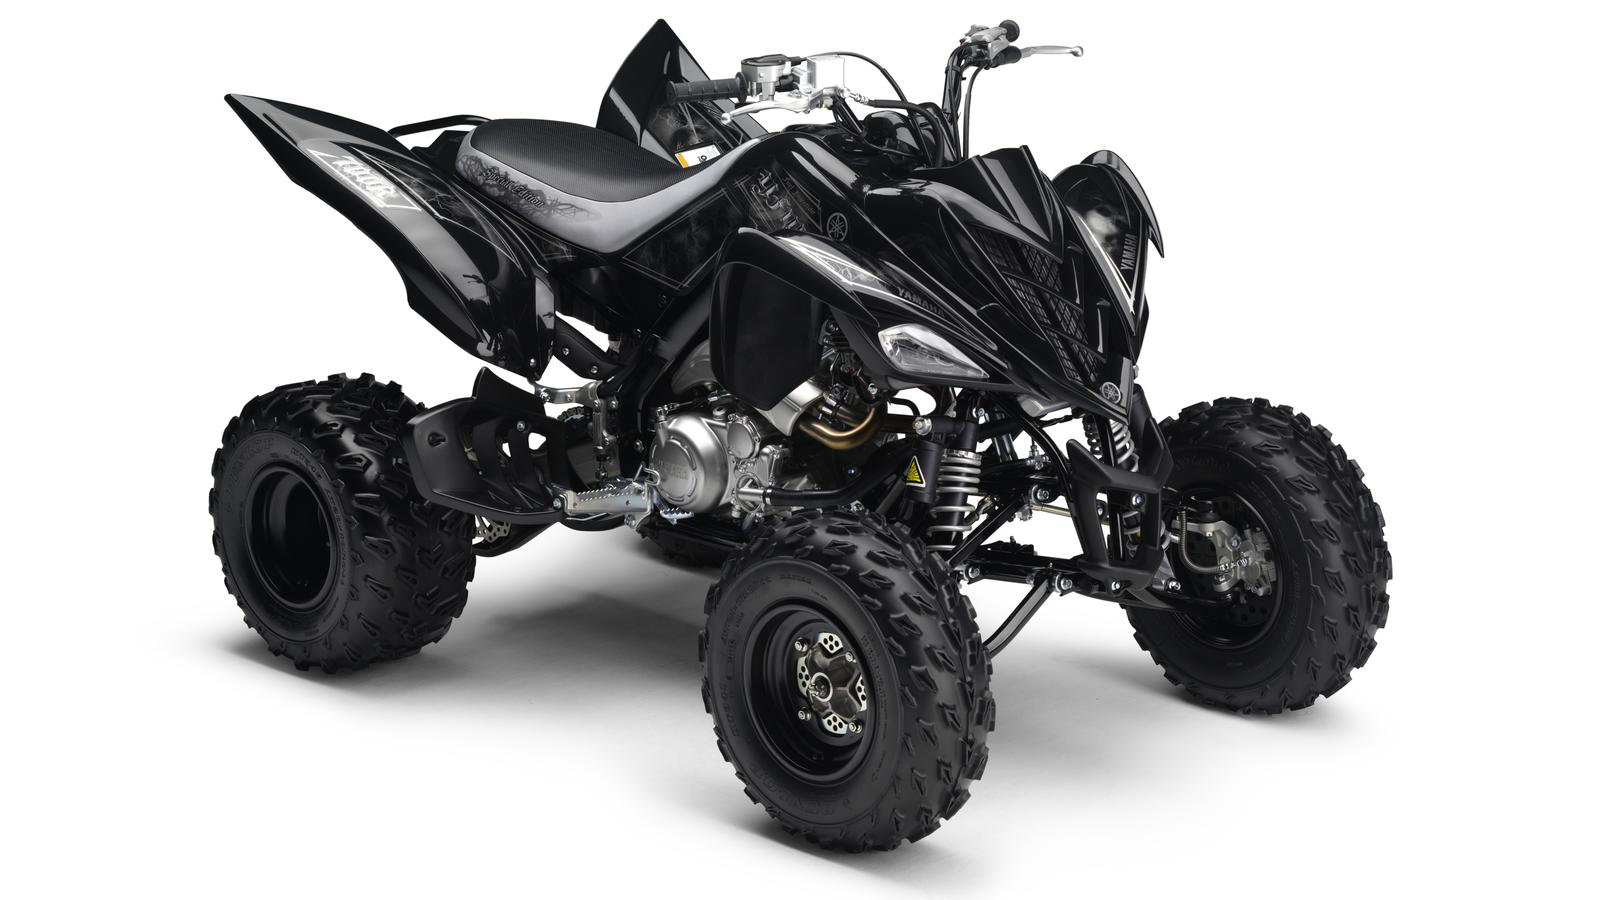 YAMAHA YFM 700 R Raptor  2011 photo 5